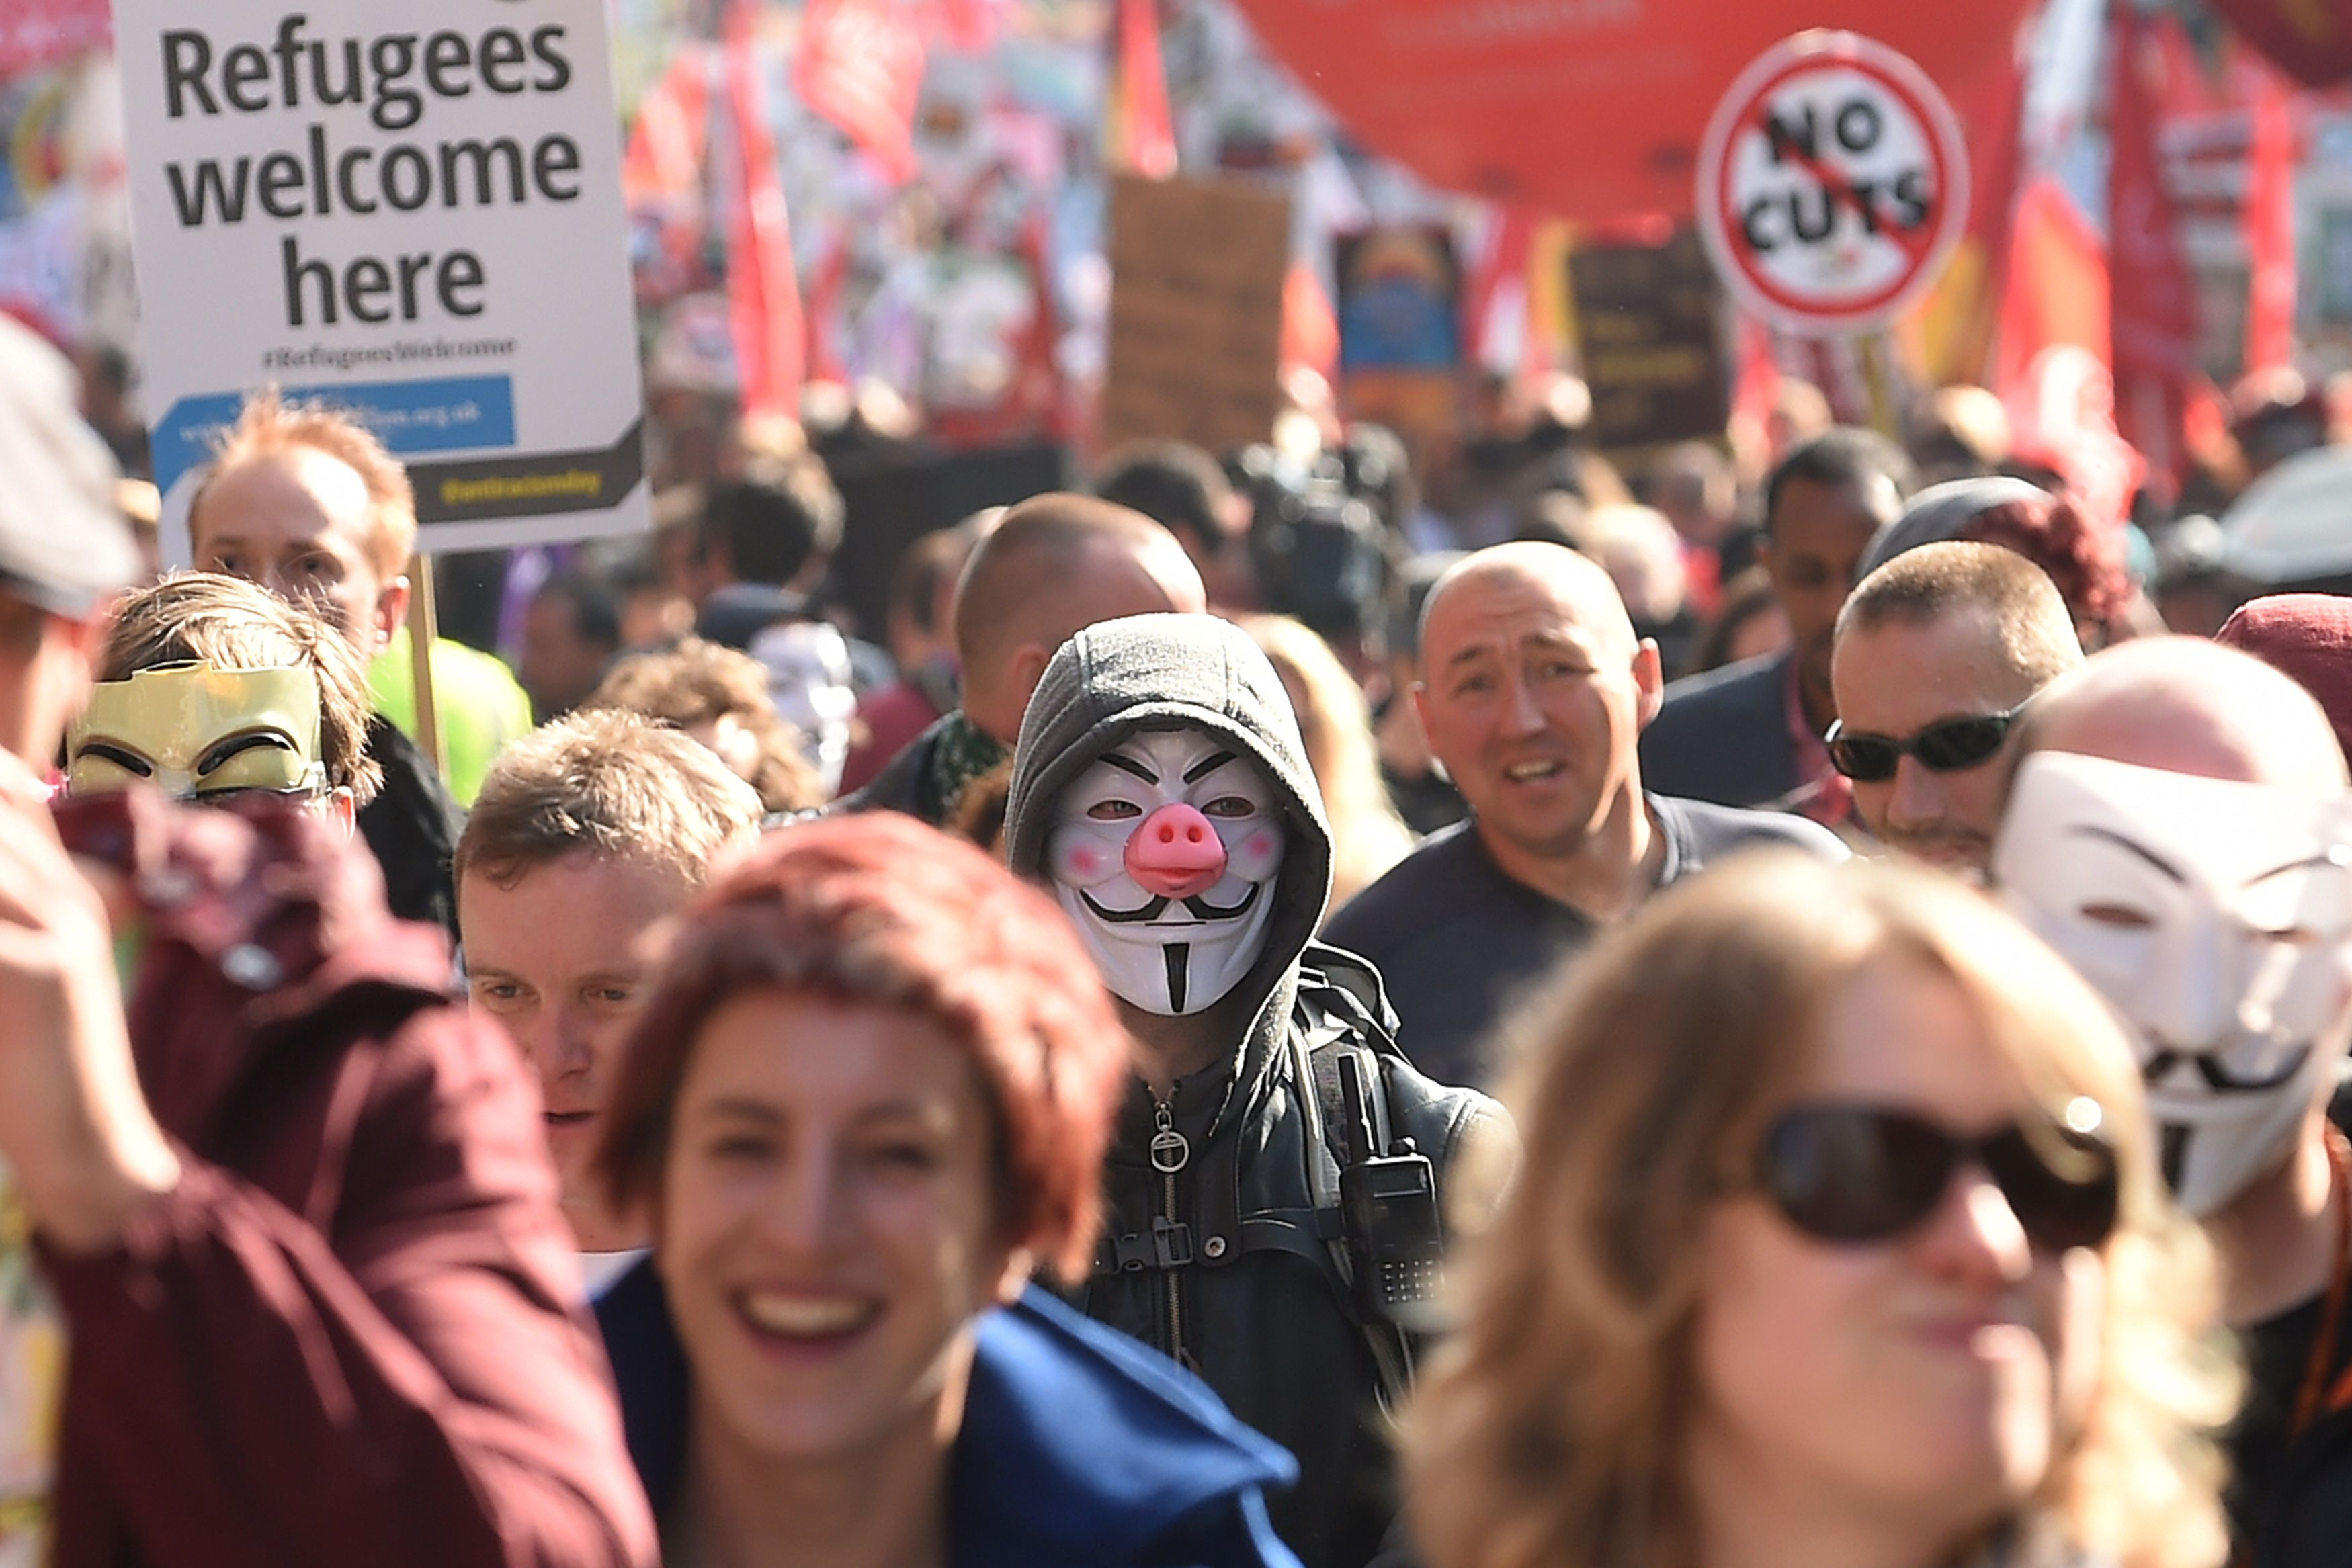 Activists during an anti-austerity march ahead of the start of the Conservative Party Conference in Manchester on Oct. 4, 2015.